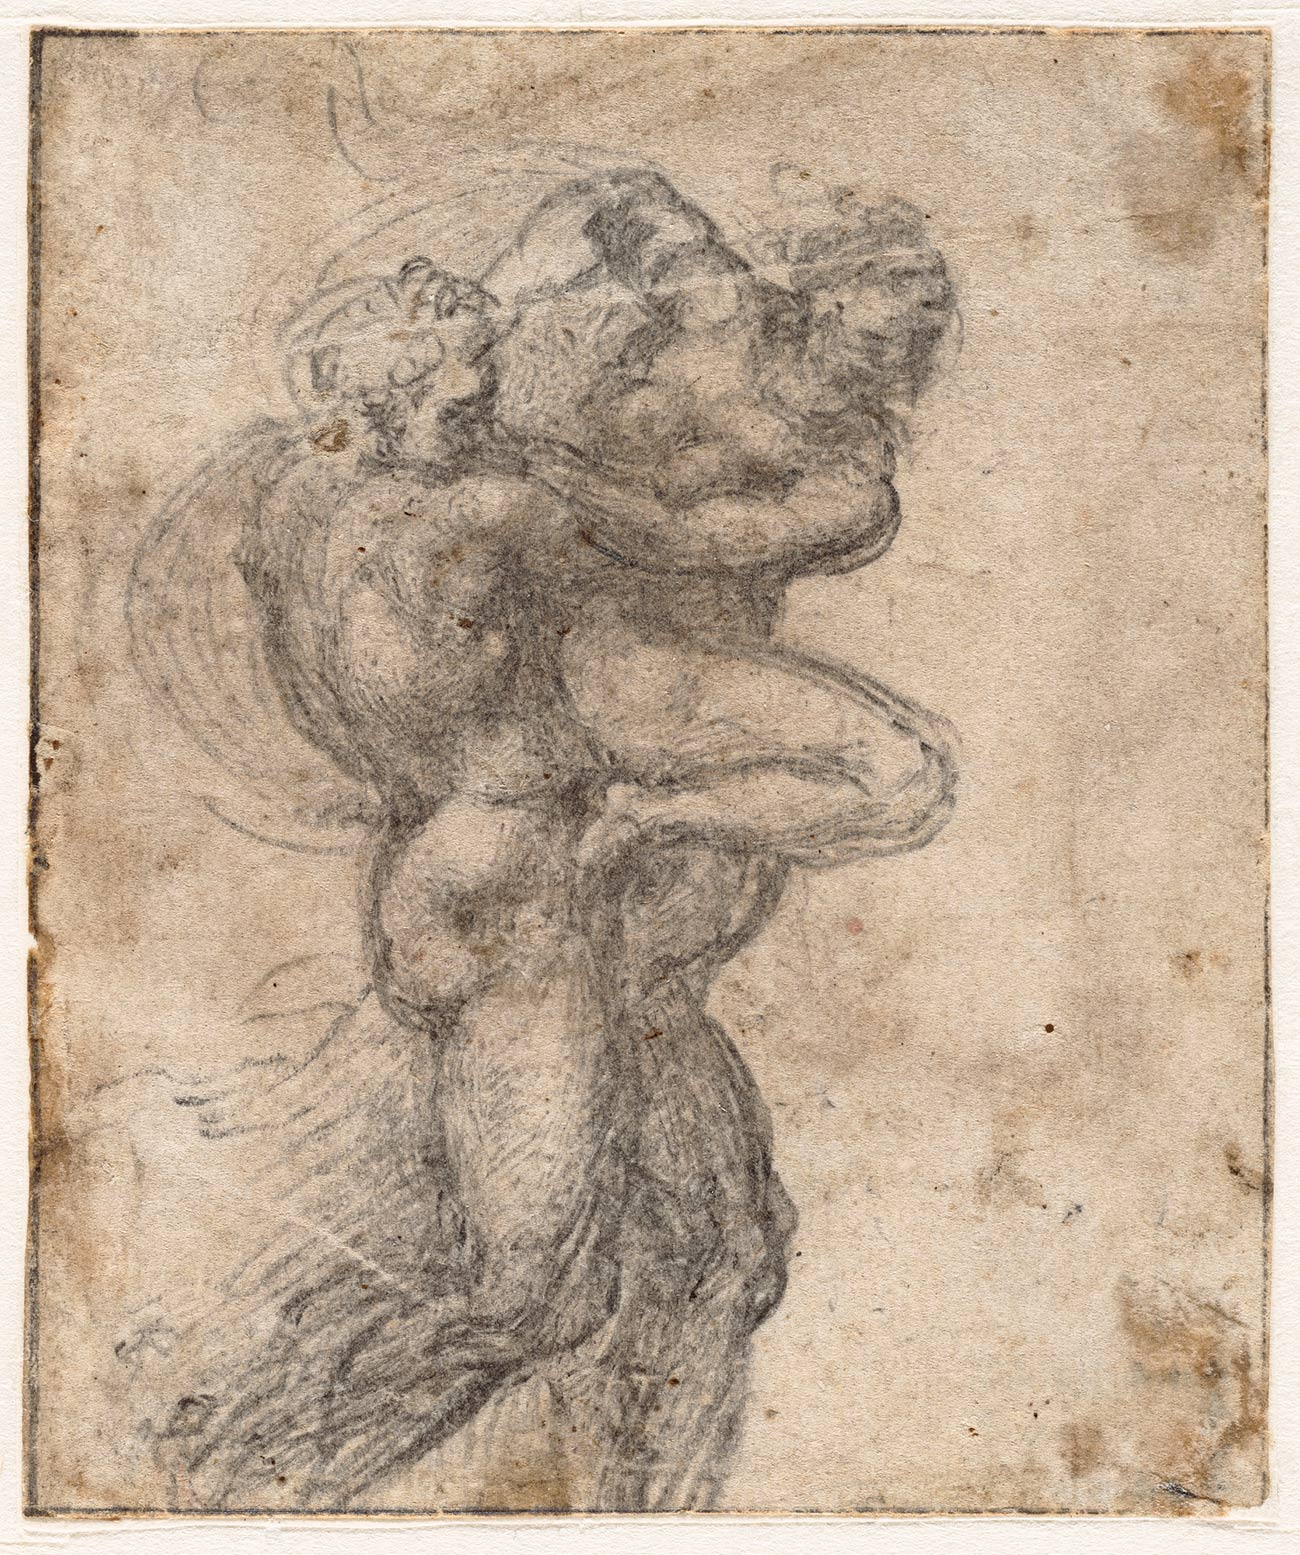 Sketch of nude male carrying a nude female